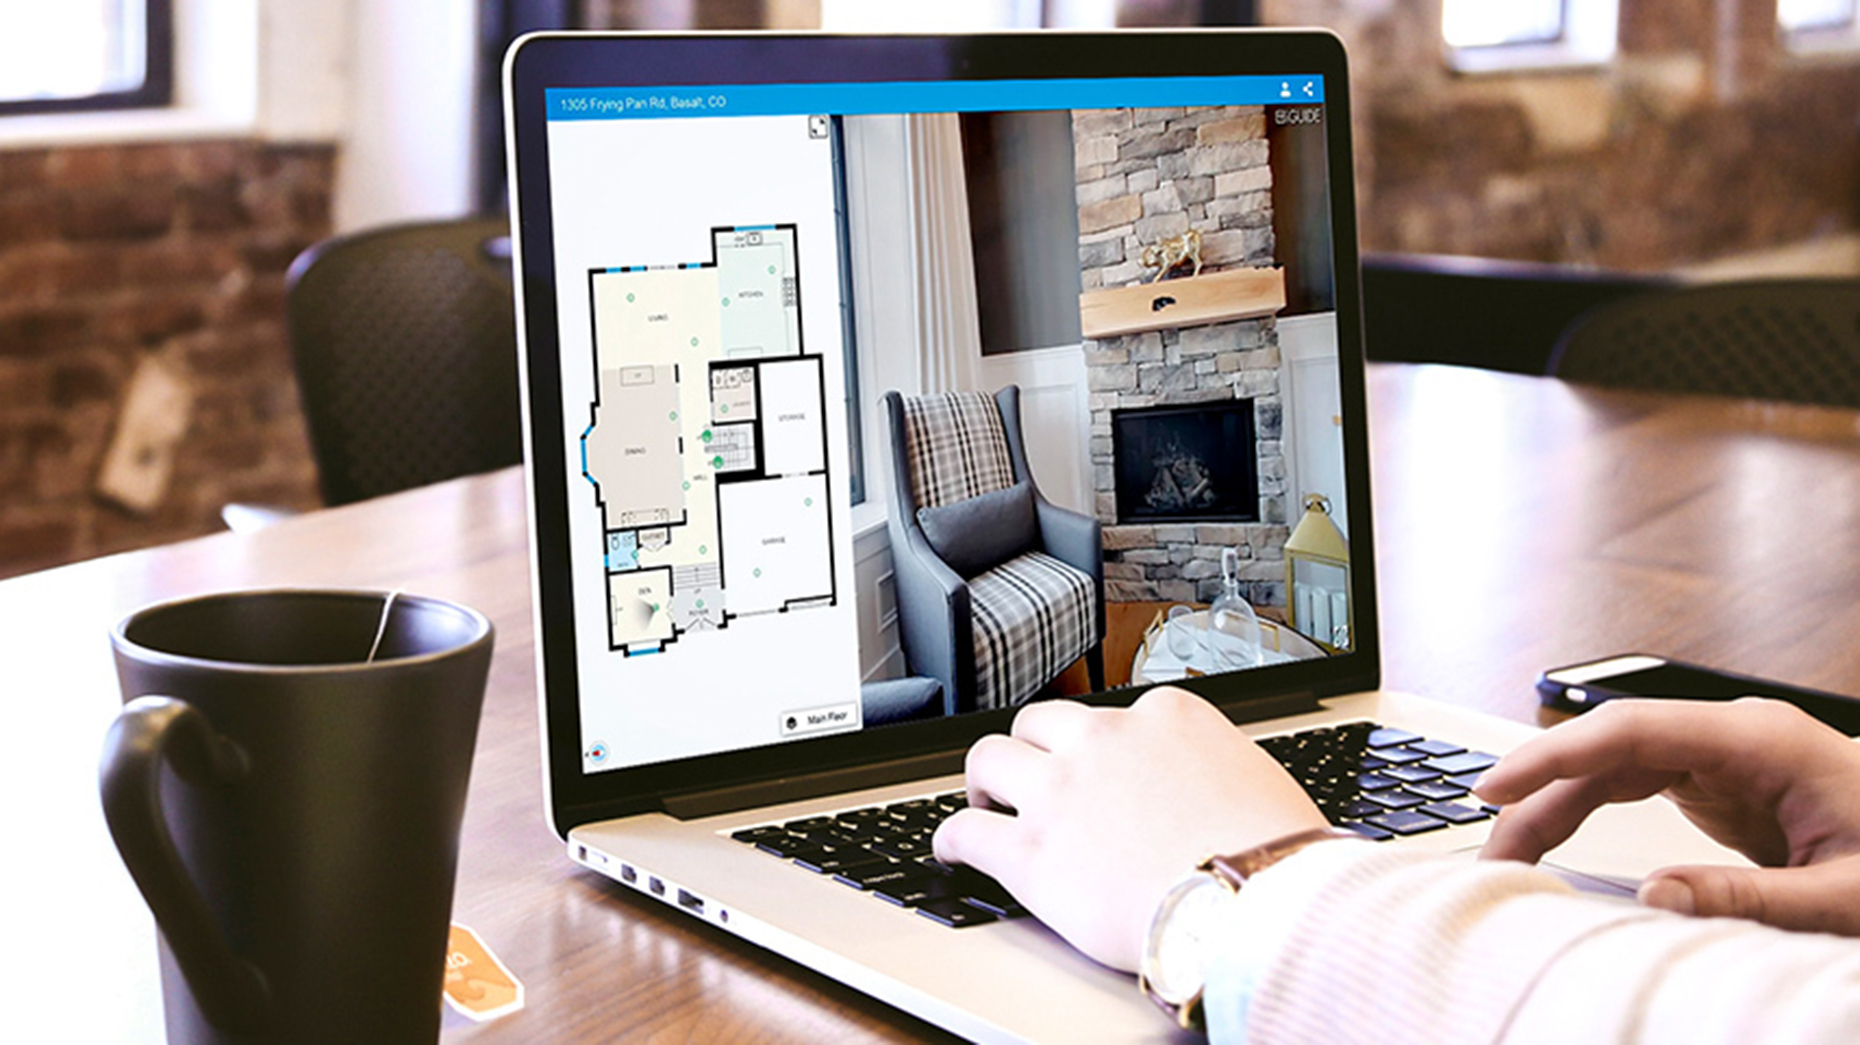 Planitar partners with Floorplanner and adds powerful multiparty home tours